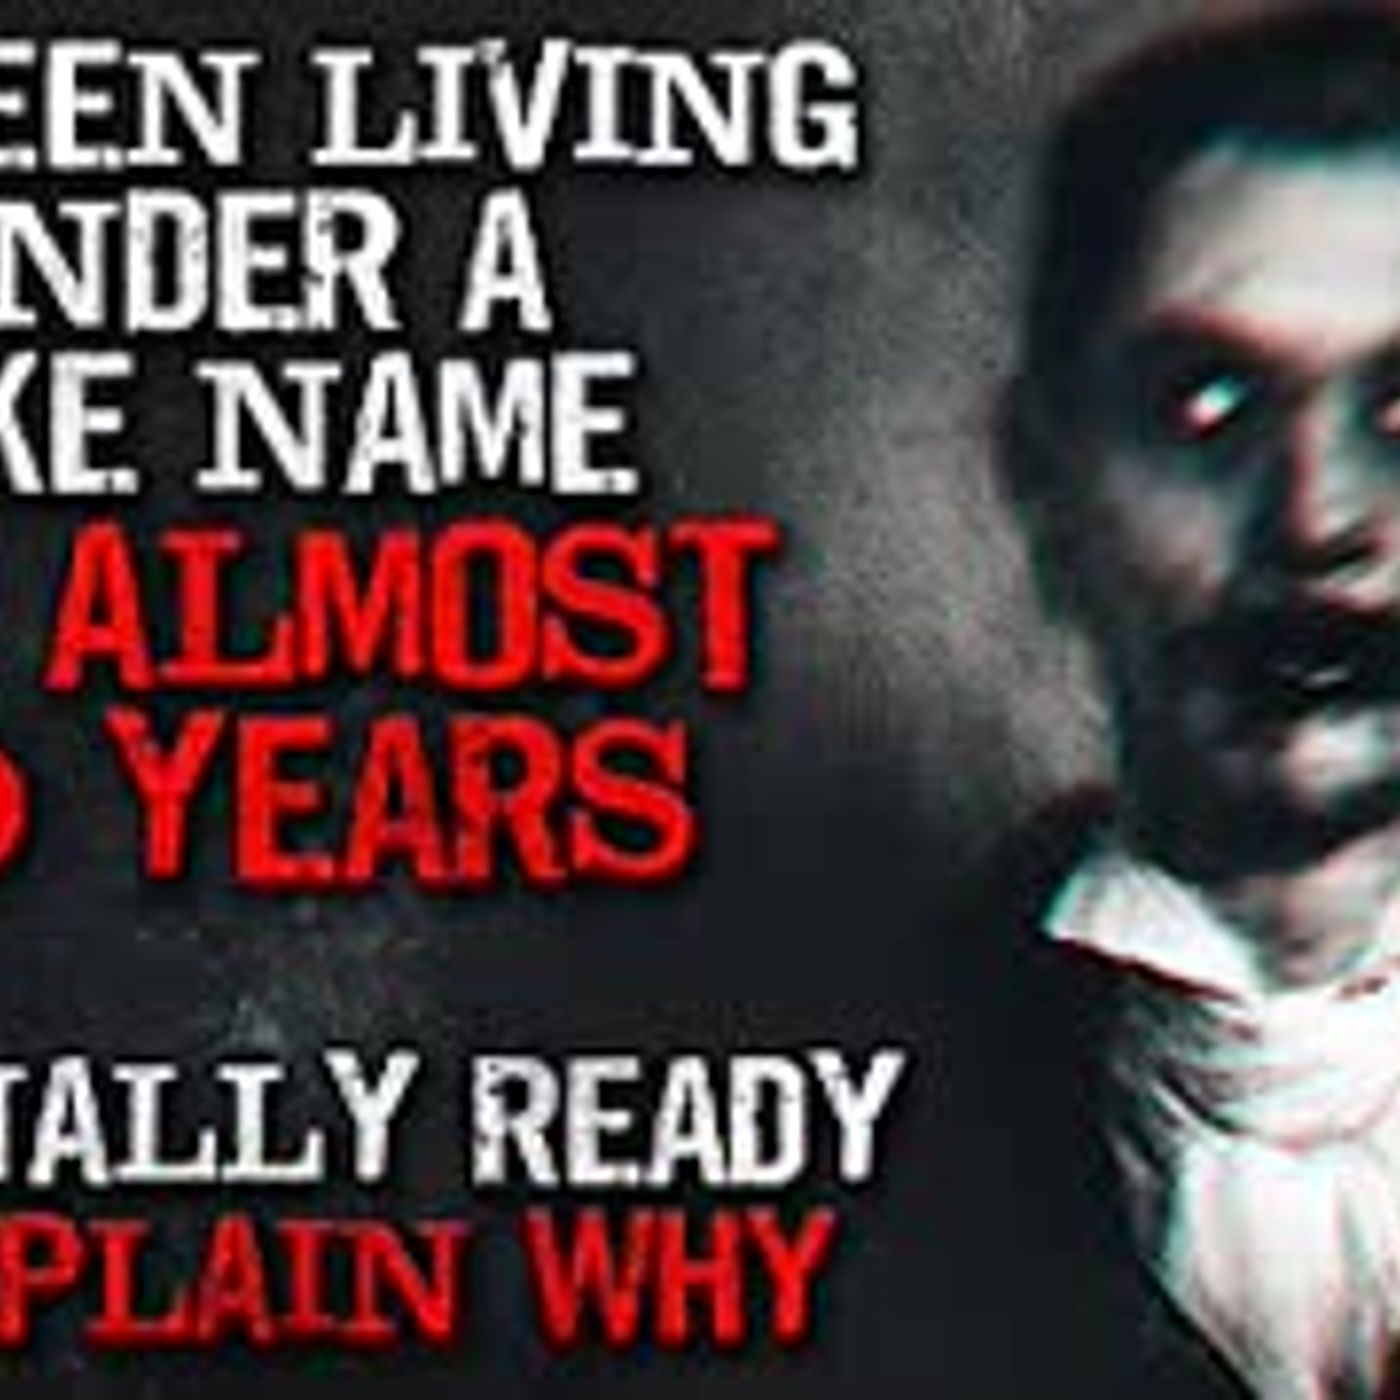 """I've been living under a fake name for almost 20 years. I'm ready to explain why."" Creepypasta"